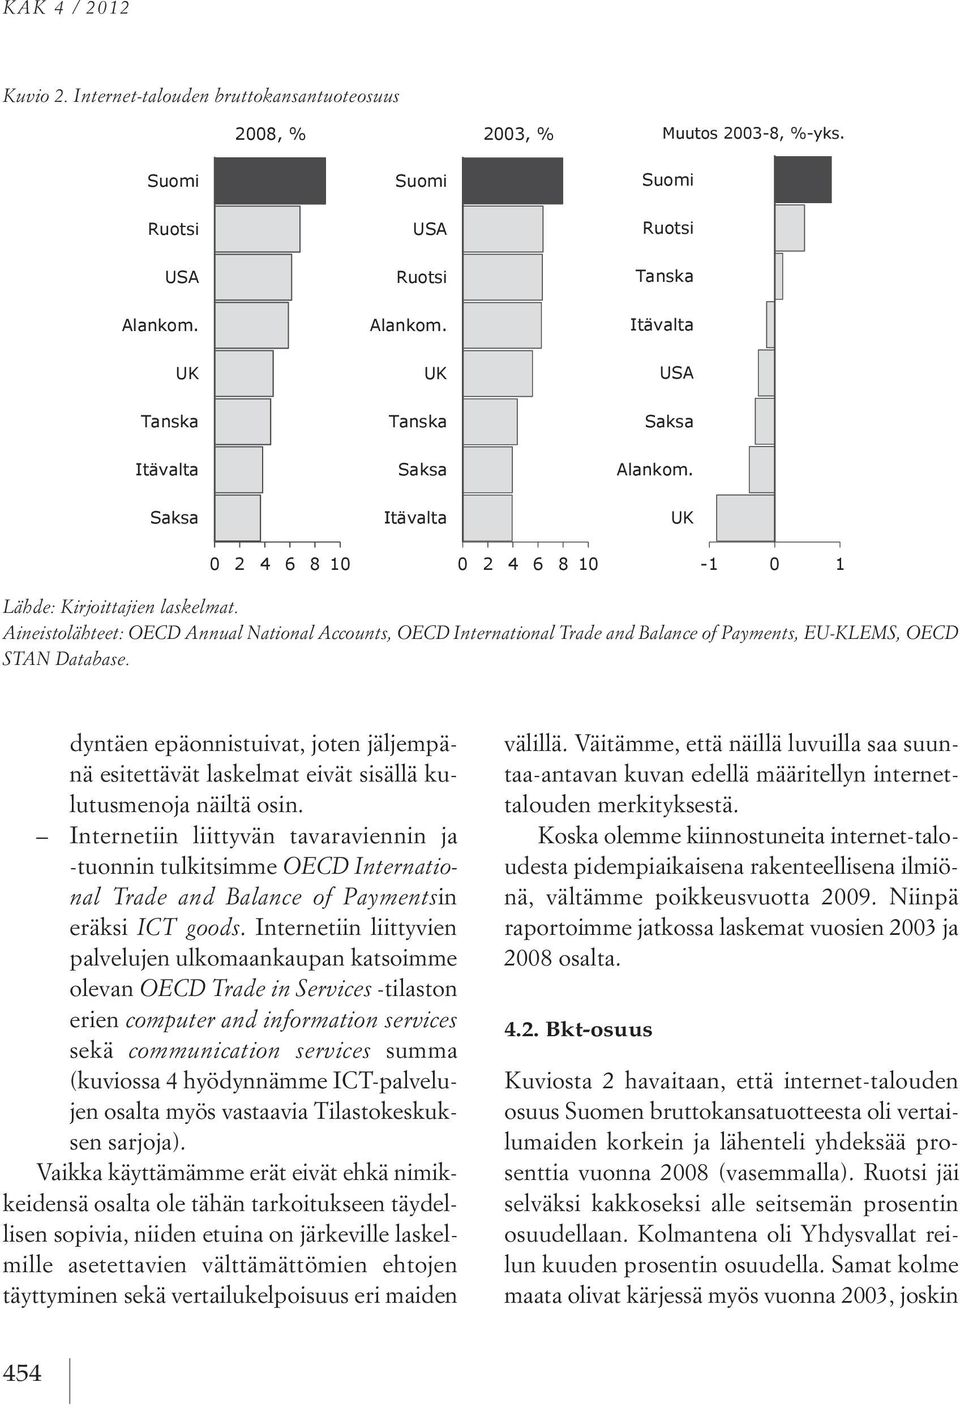 Annual National Accounts, OECD International Trade and Balance of Payments, EU-KLEMS, OECD STAN Database.